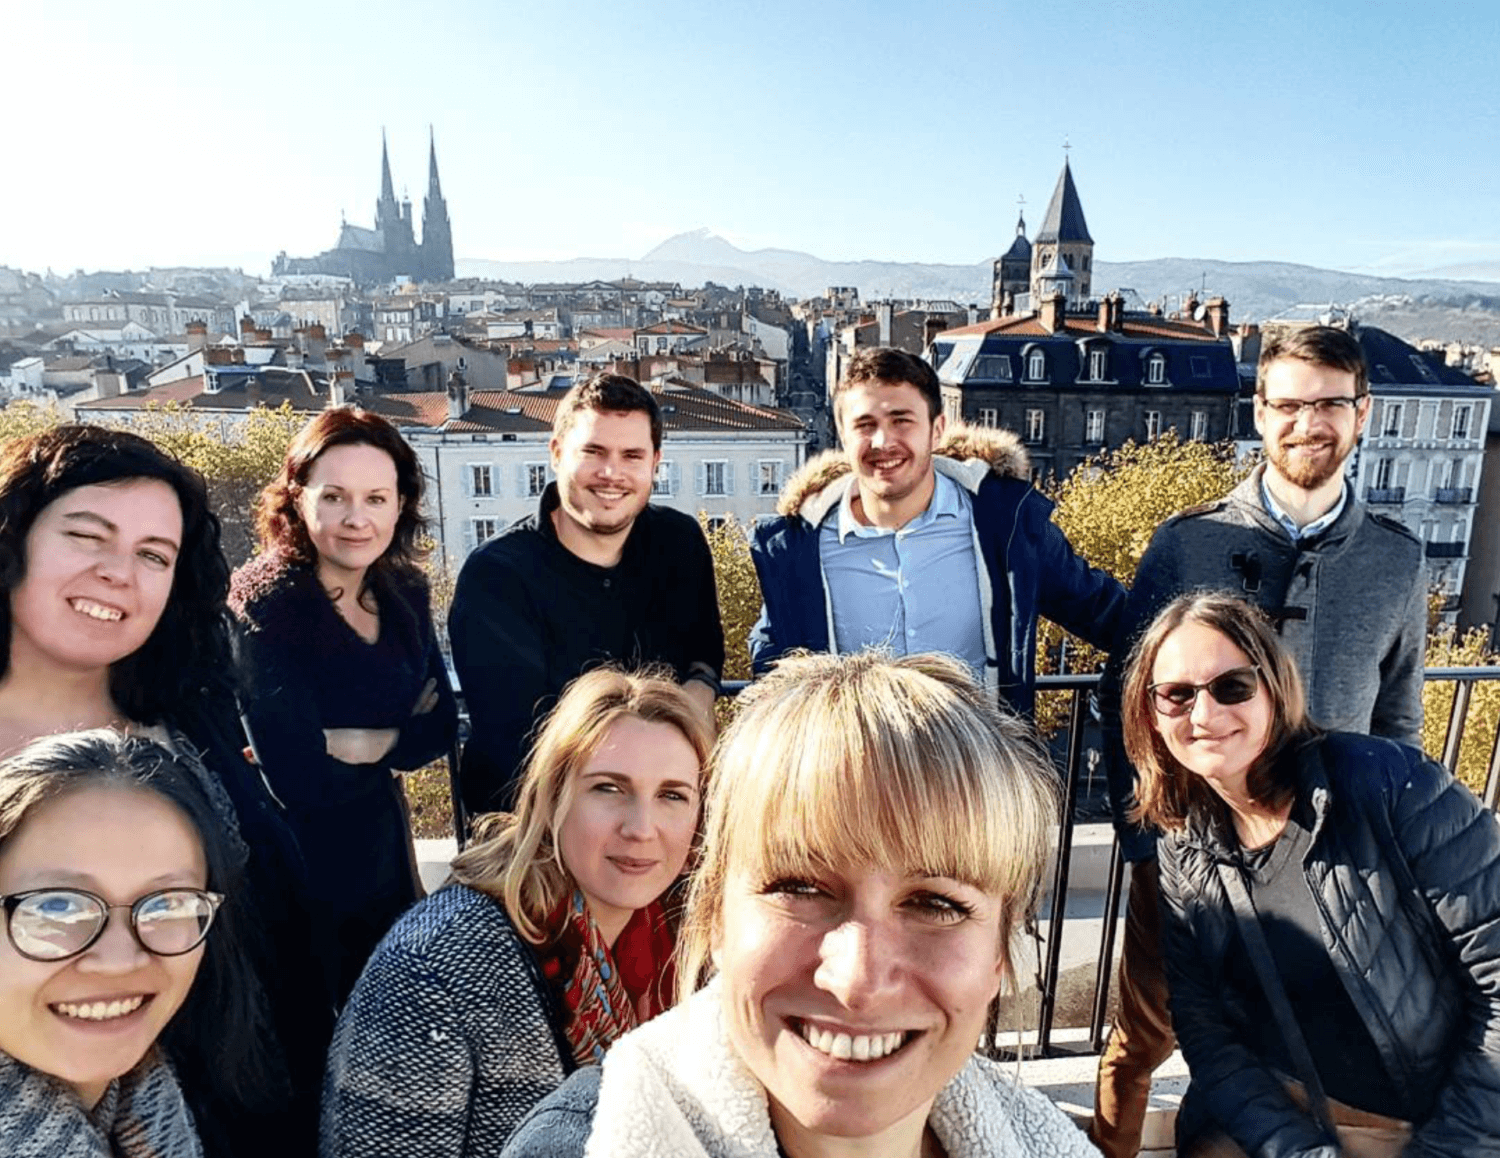 Domraider equipe balcon clermont ferrand cathedrale